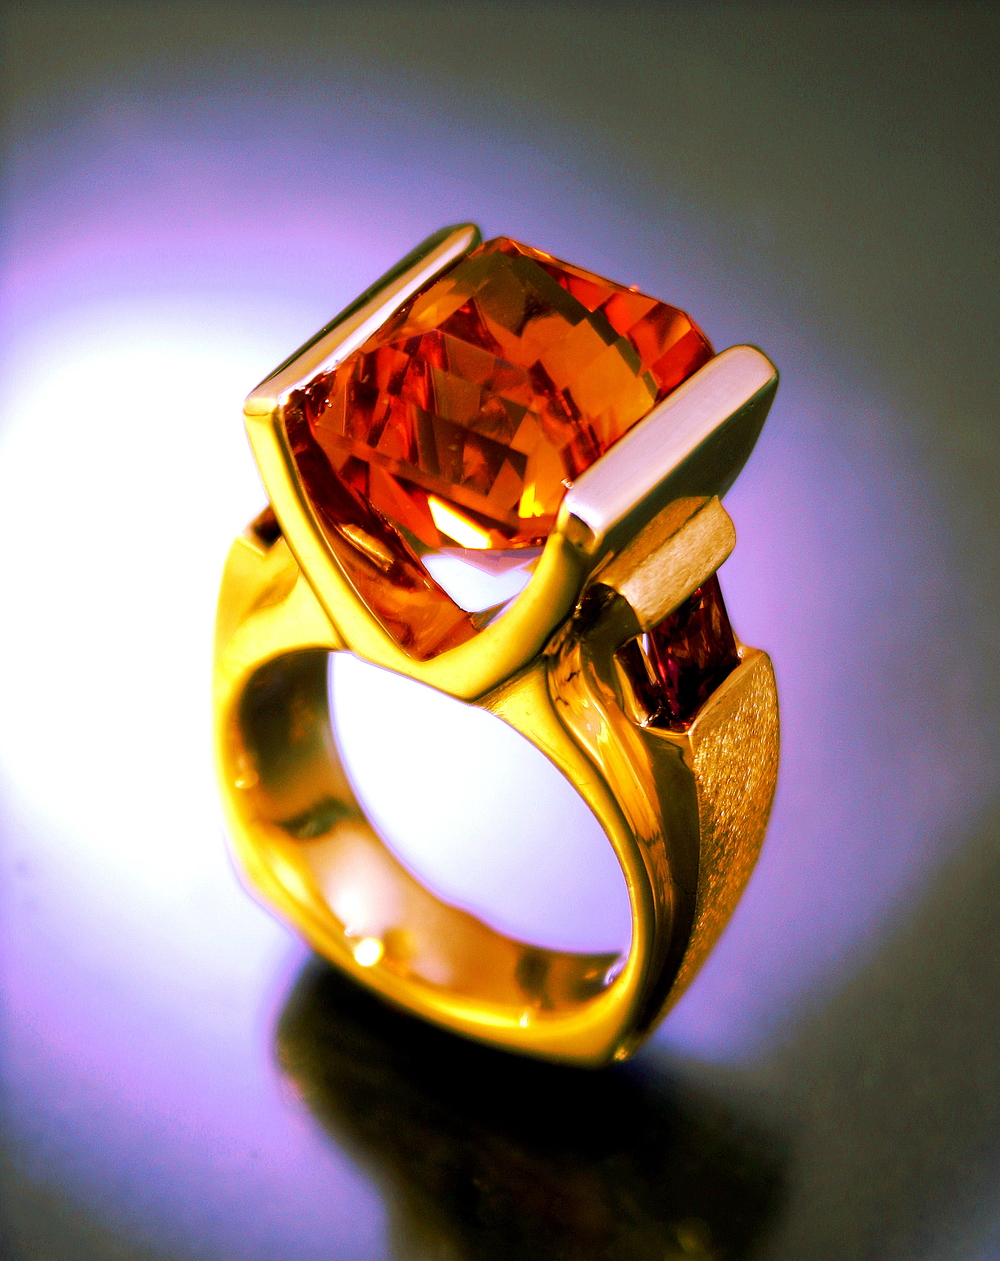 14K White and Yellow Gold with Citrine center and Garnet side stones